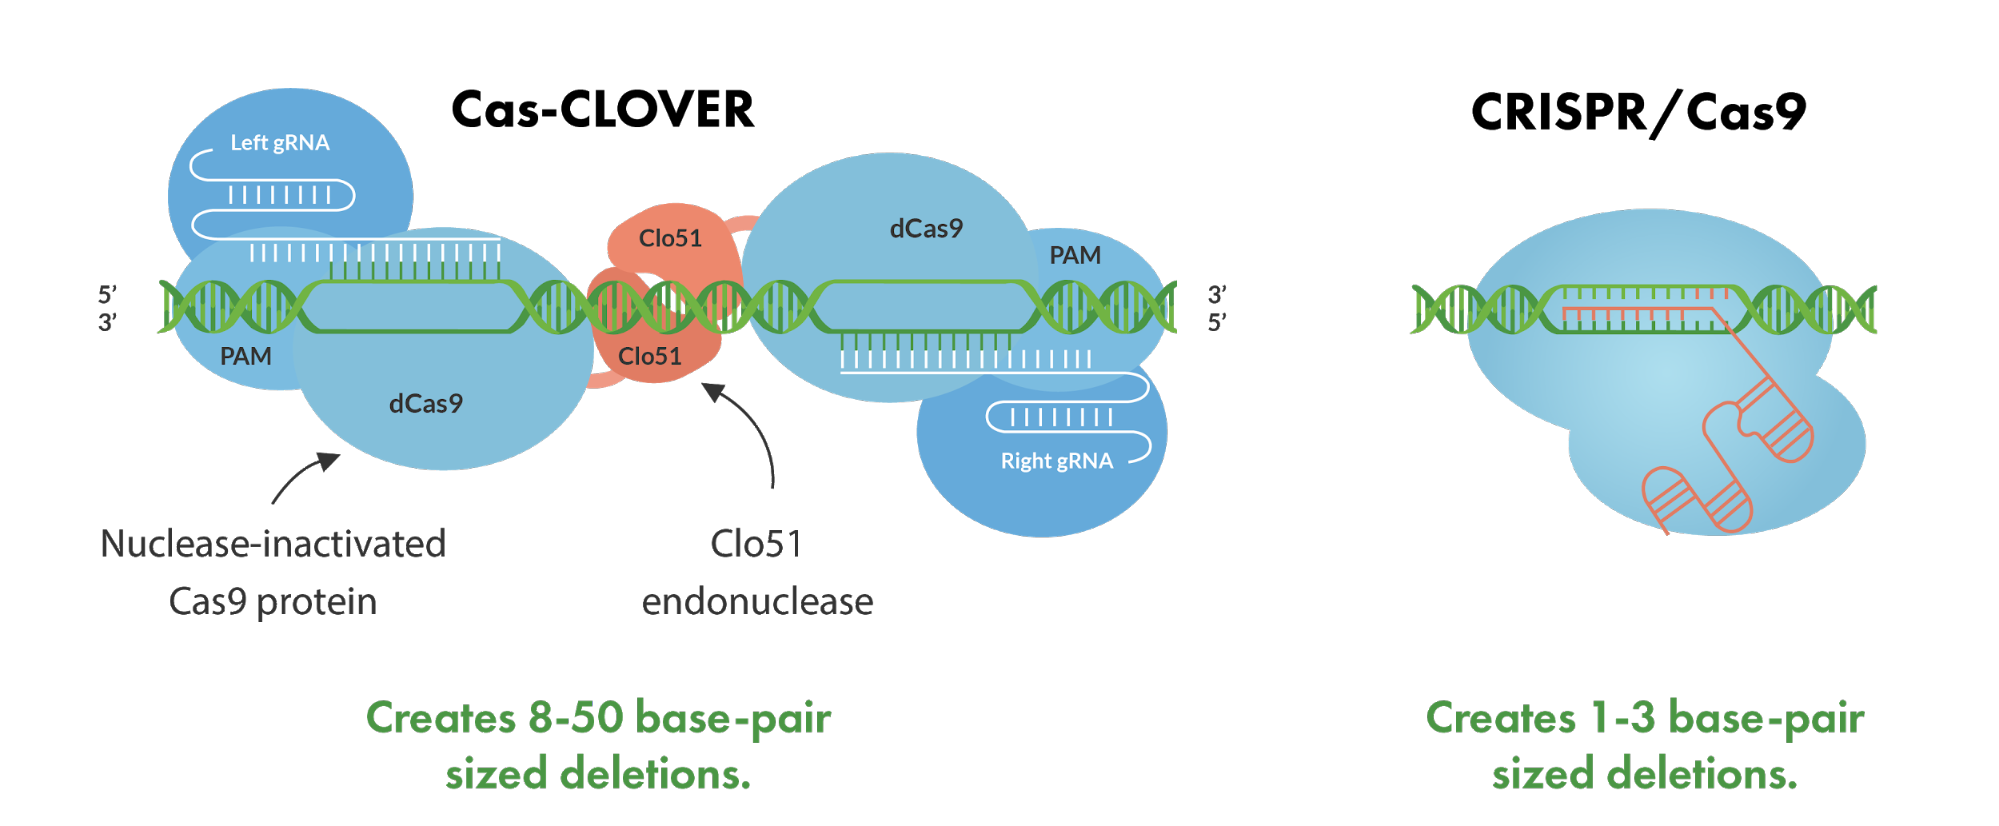 difference of created base-pair sized deletions between Cas-CLOVER and CRISPR/Cas9